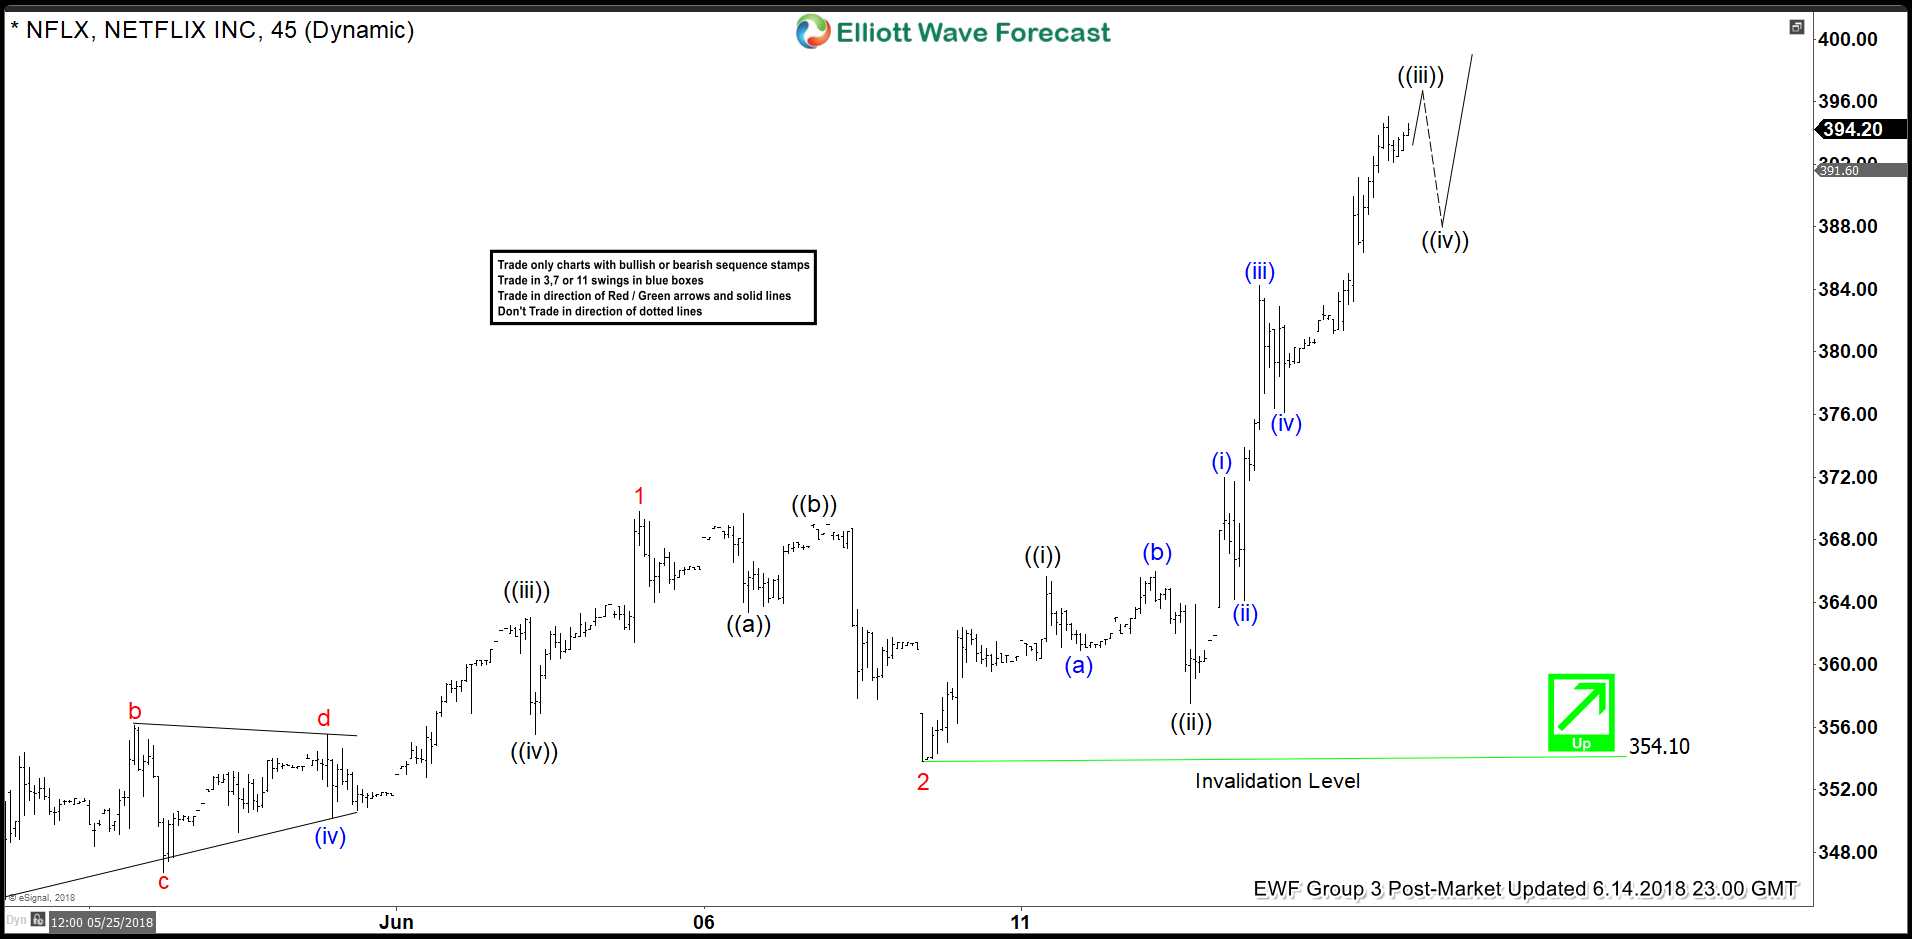 Netflix Elliott Wave View: More Strength is Expected